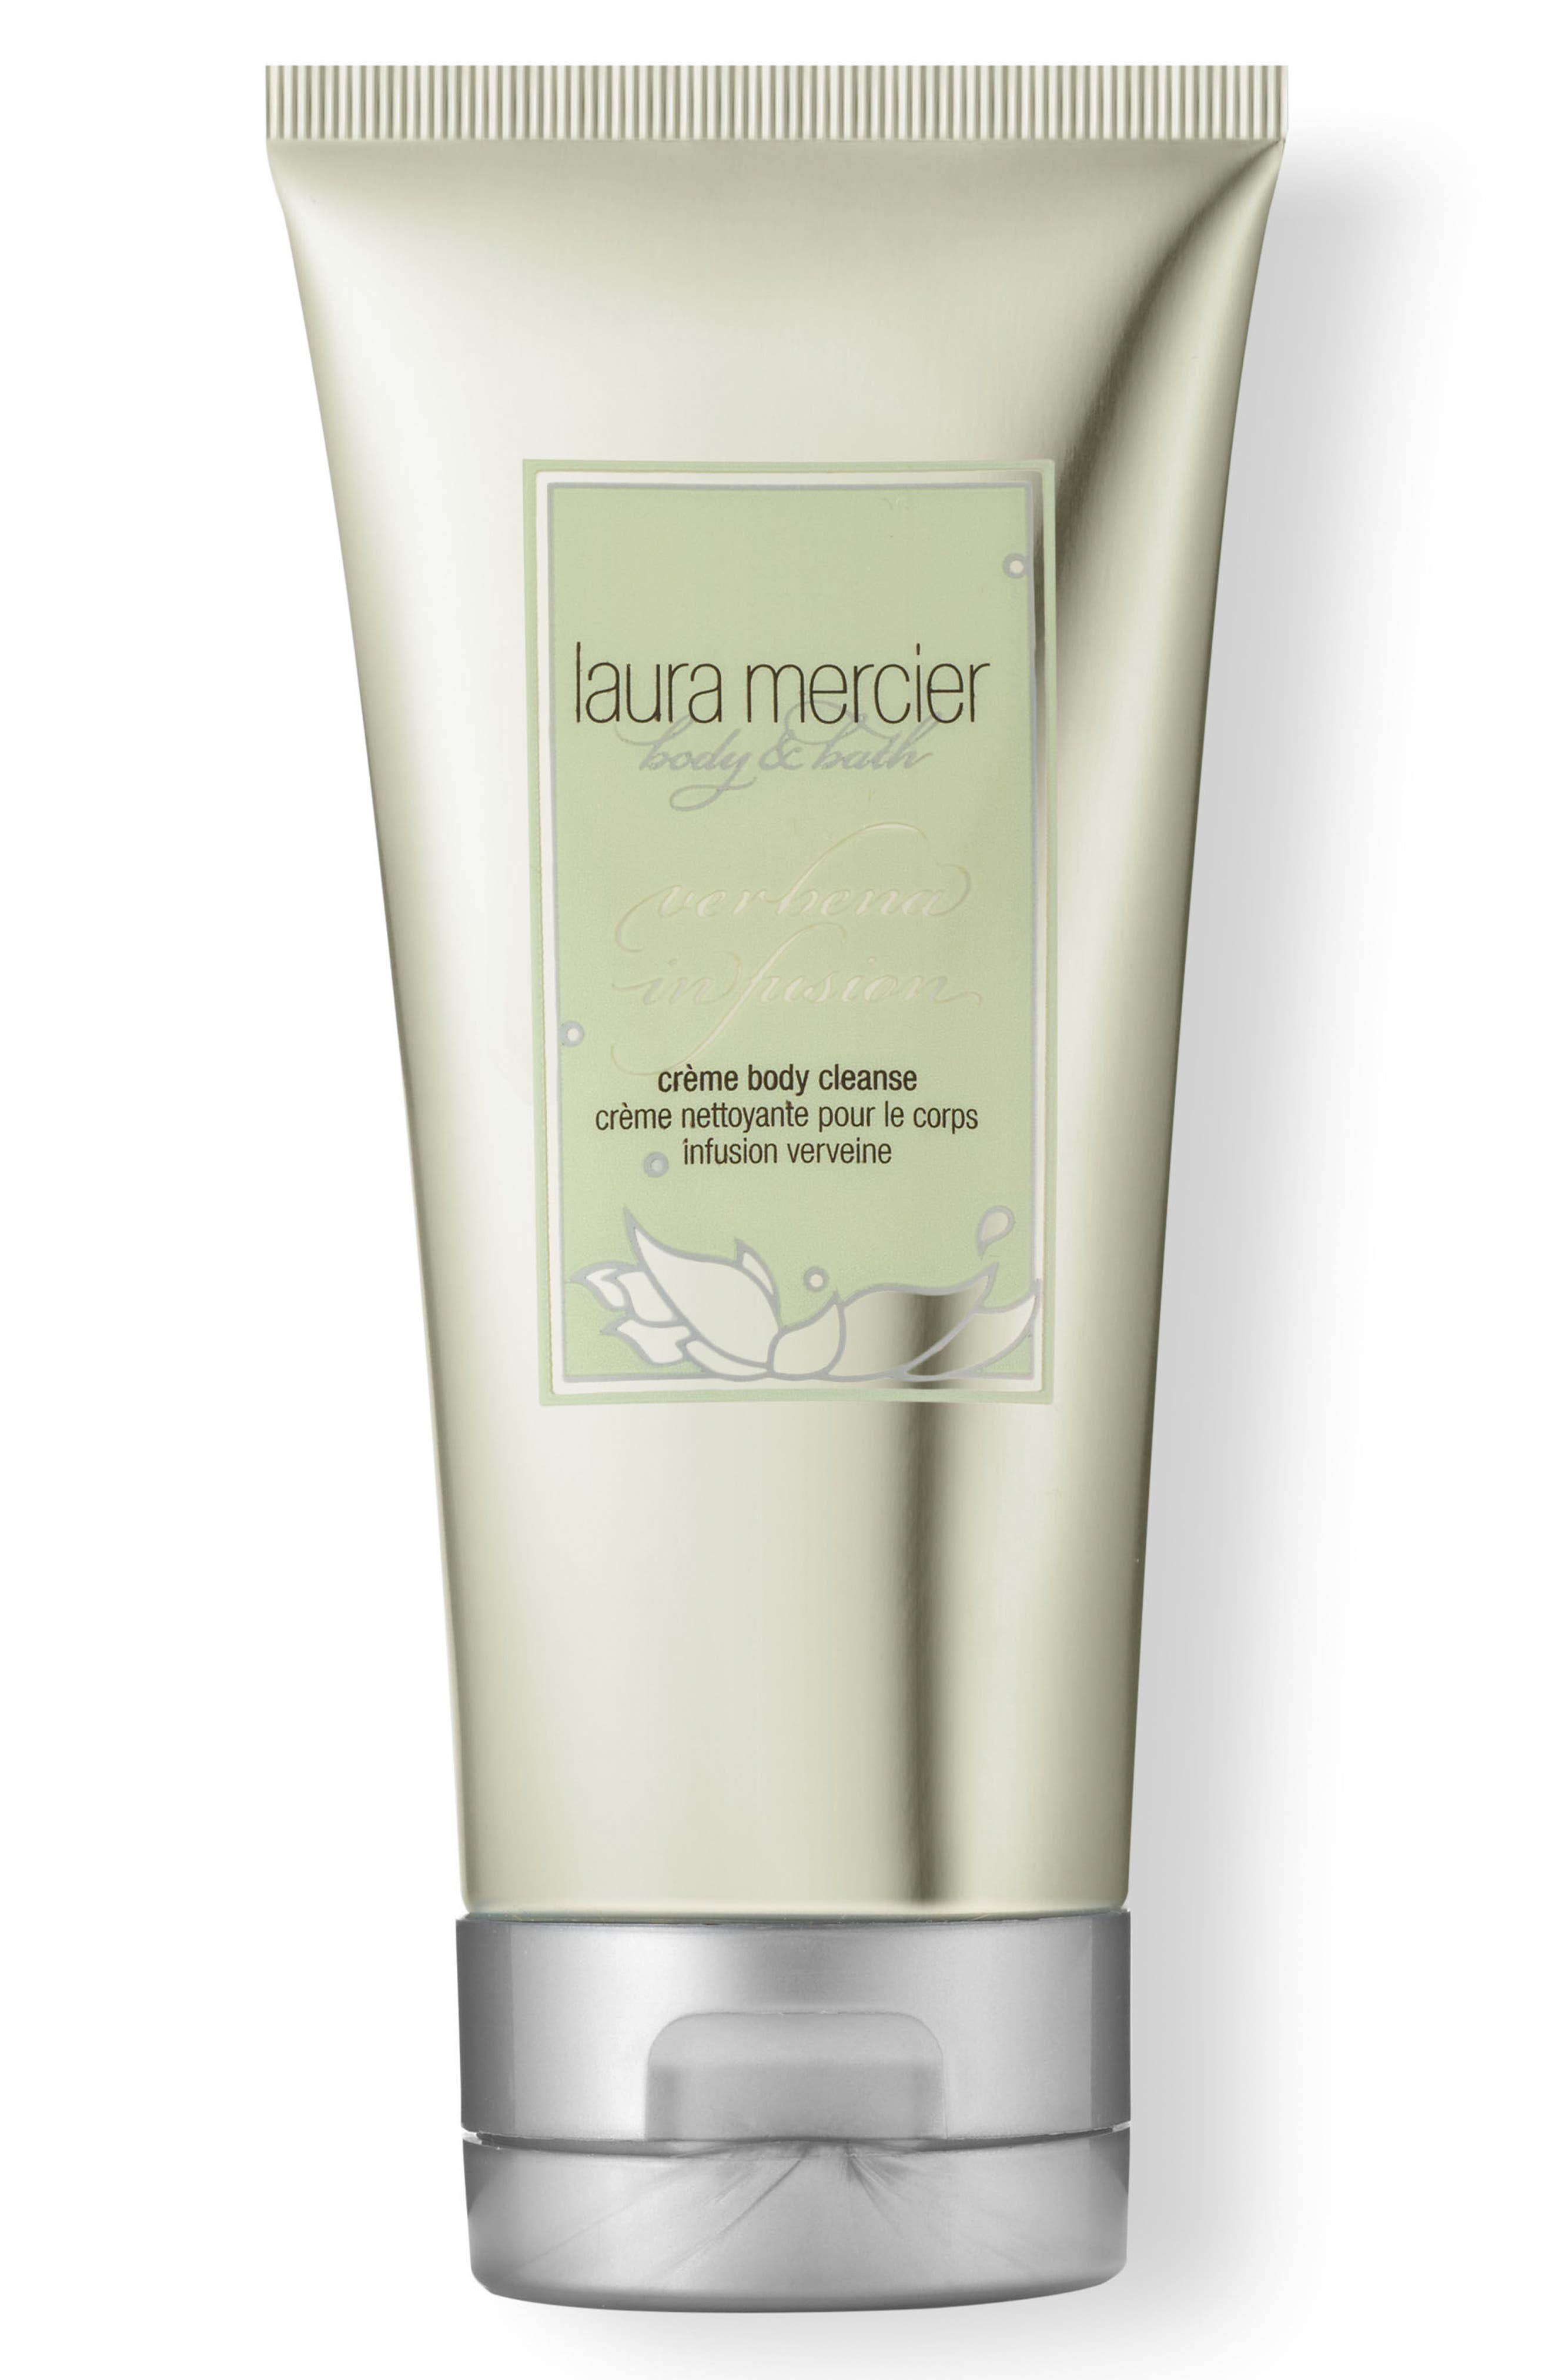 Laura Mercier 'Verbena Infusion' Creme Body Cleanse